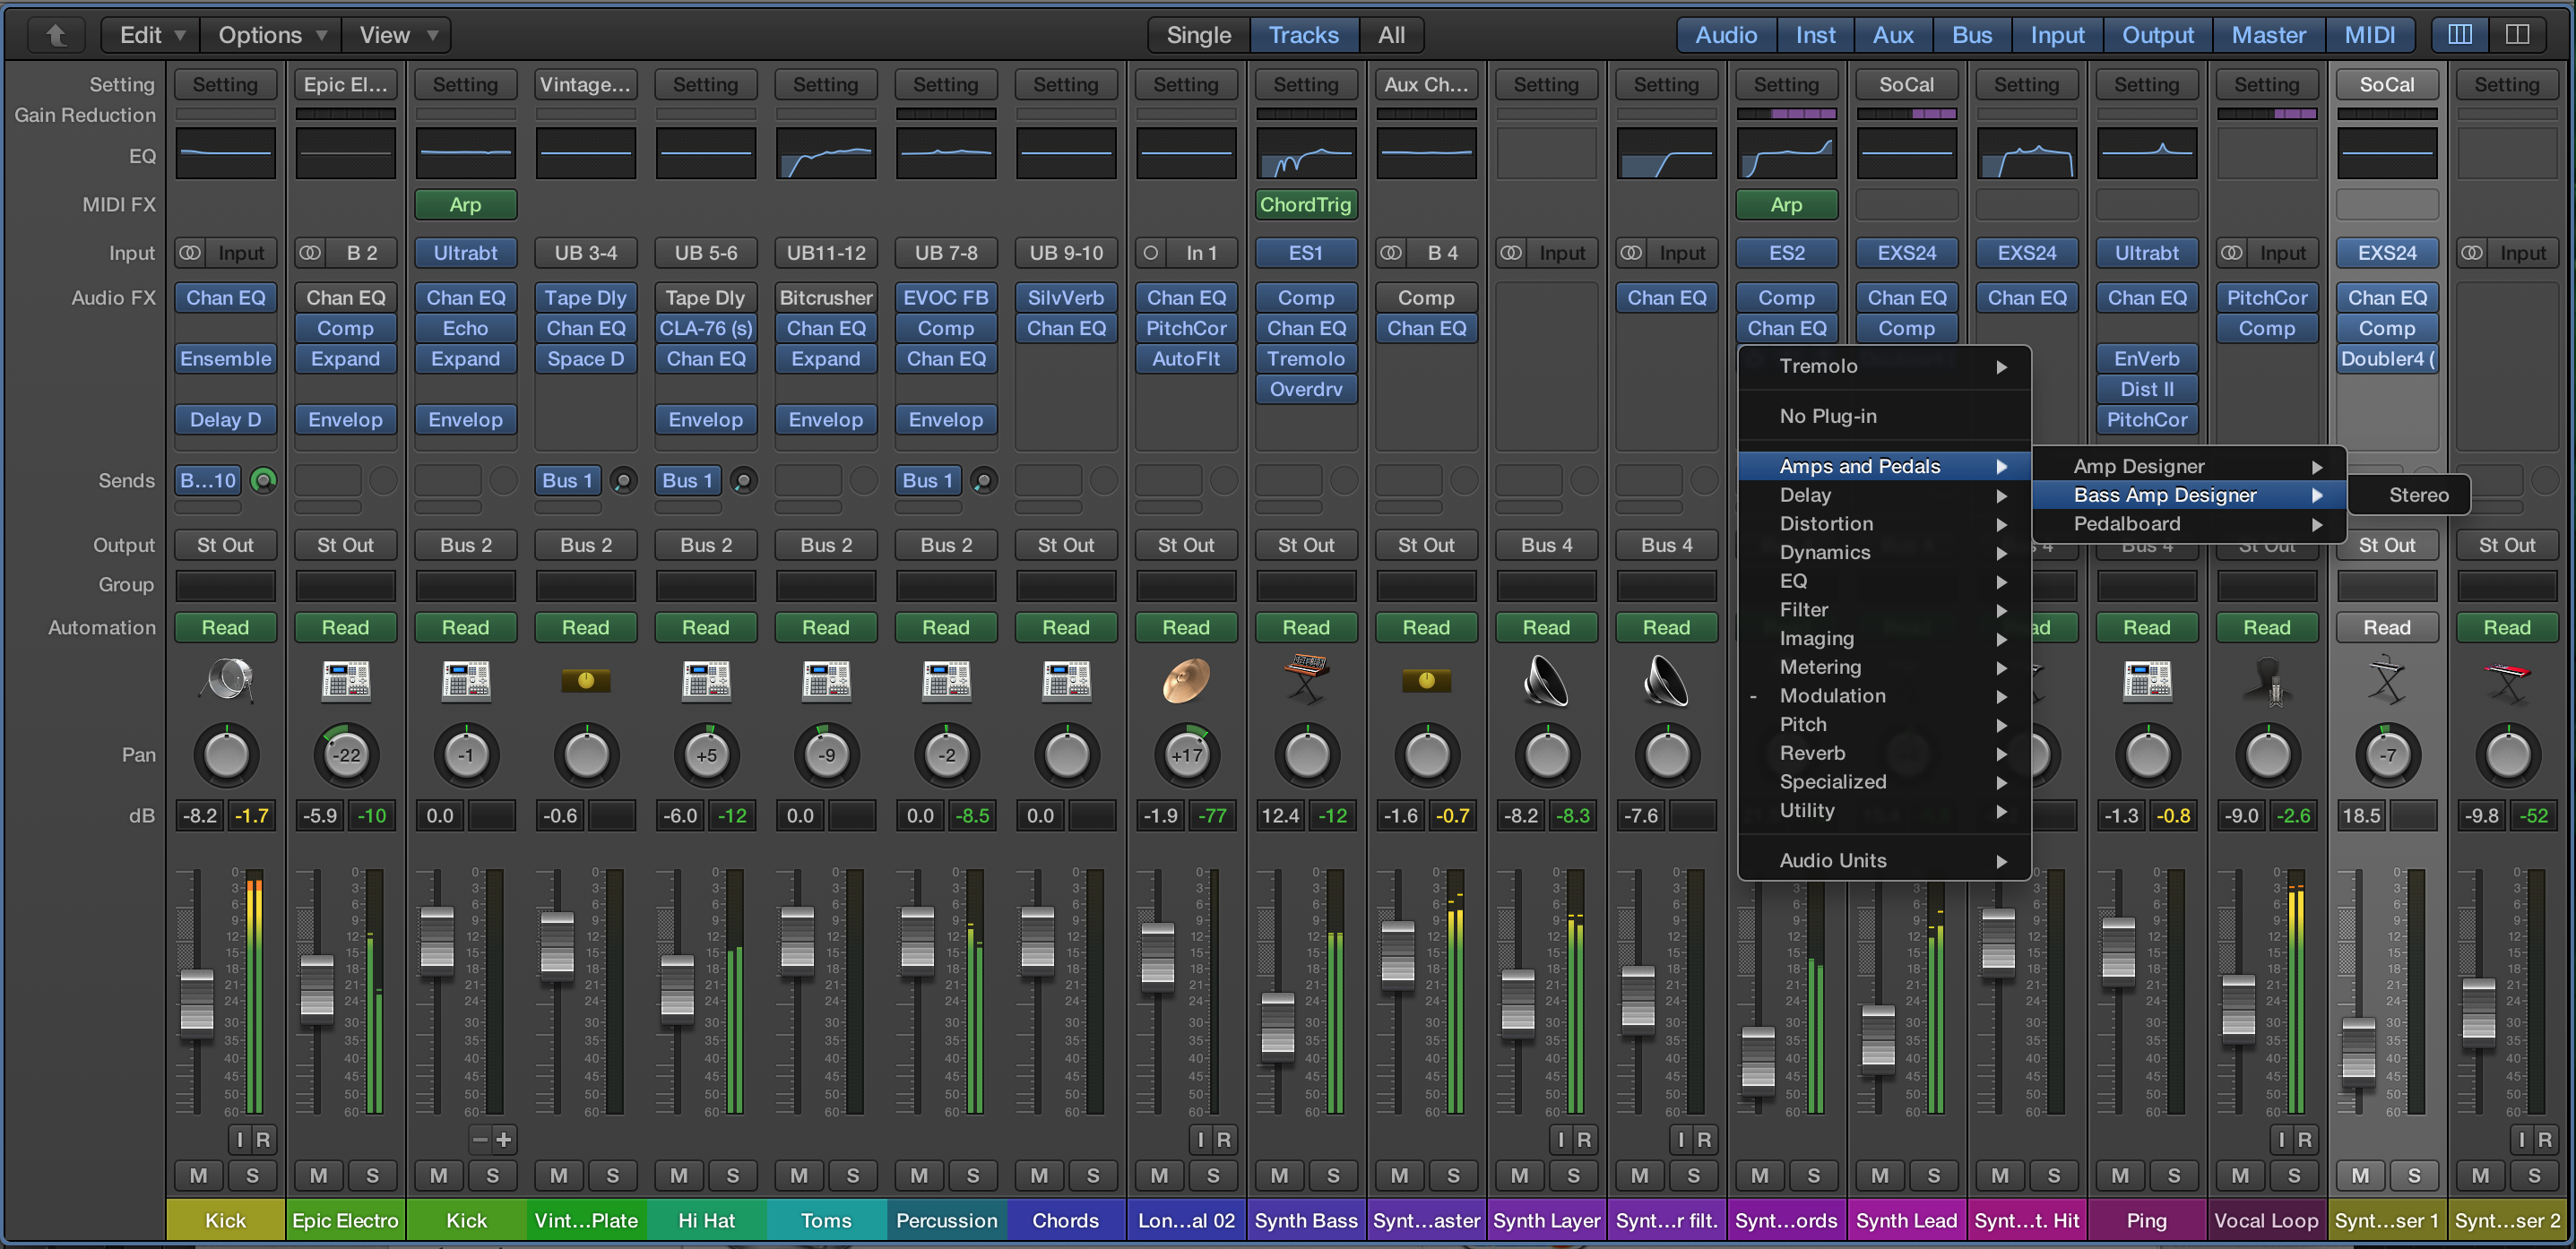 Logic Pro X review: Powerful new features & a simplified UI with no